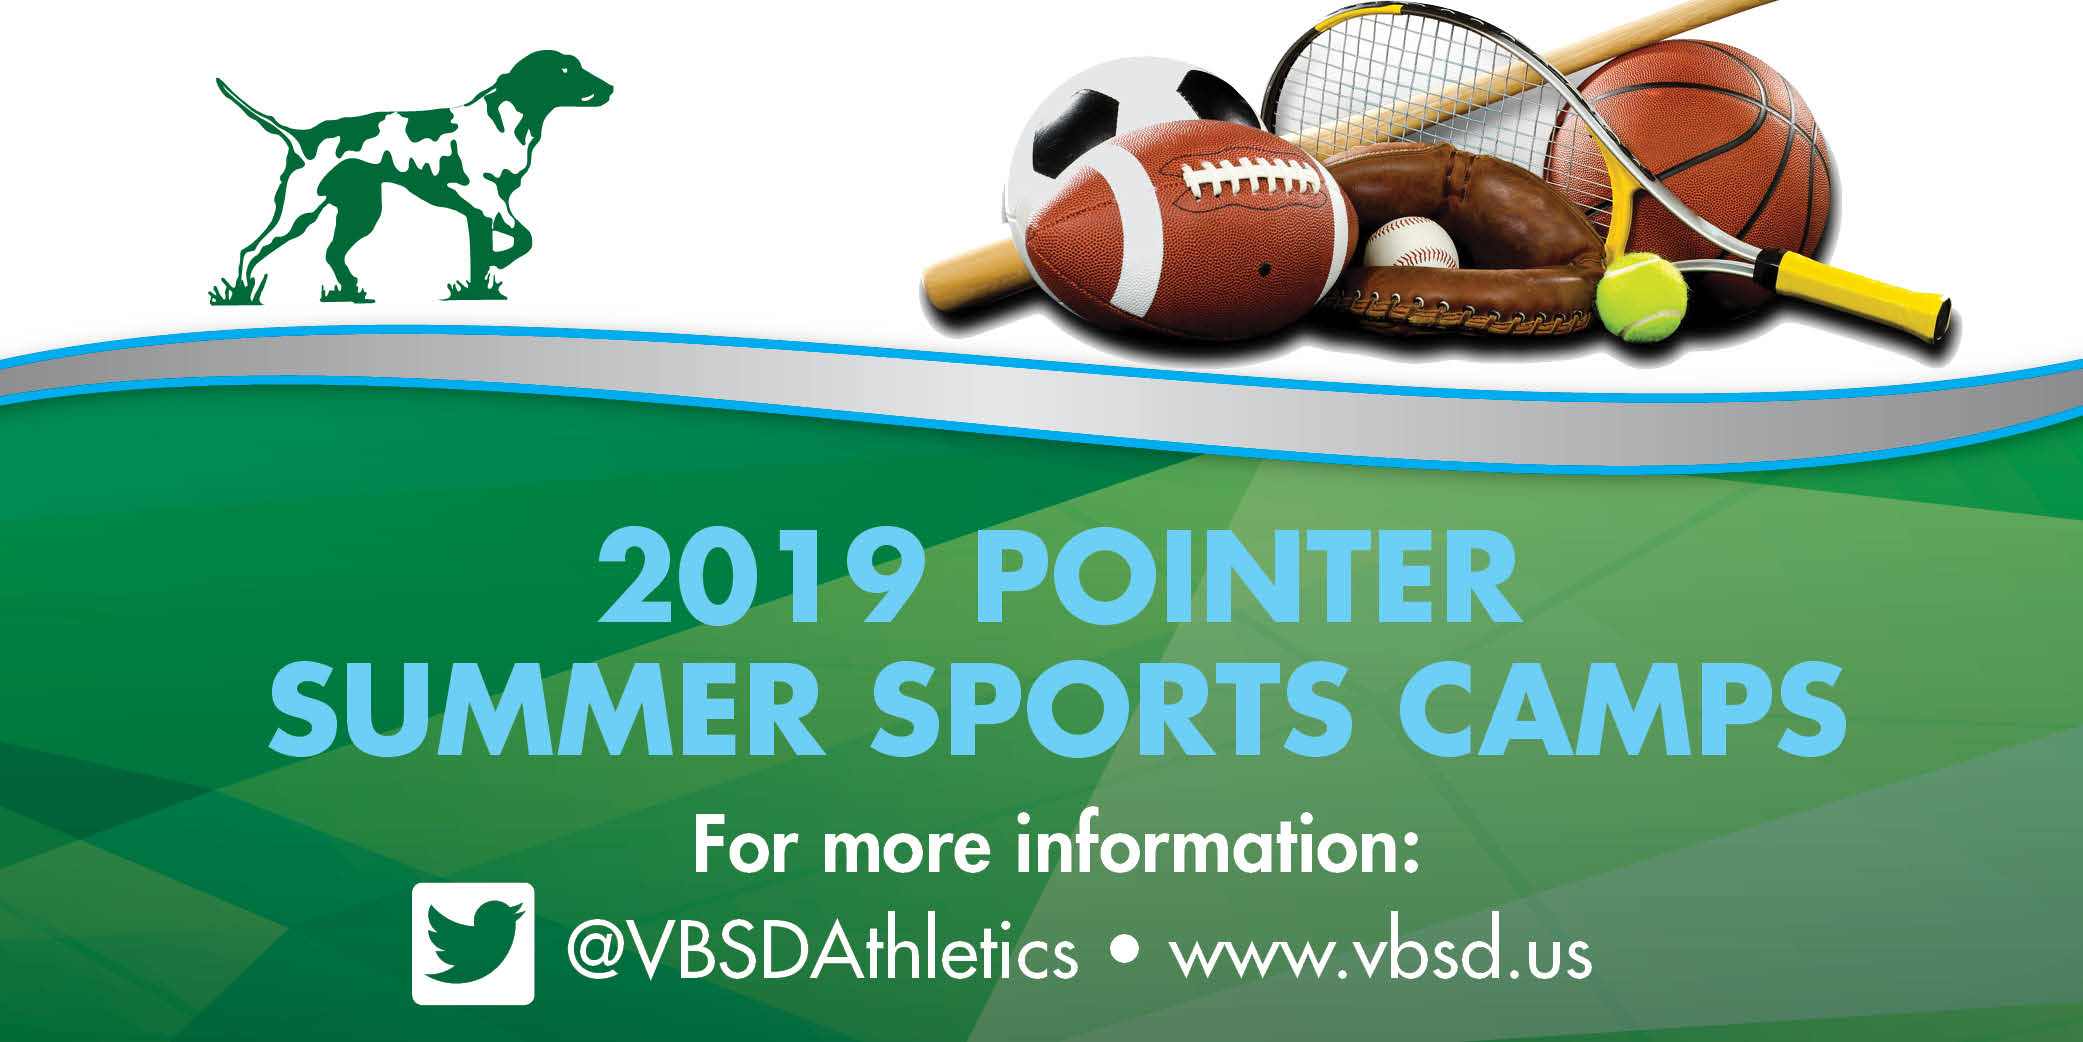 Sign-up today for Pointer Summer Sports Camps!